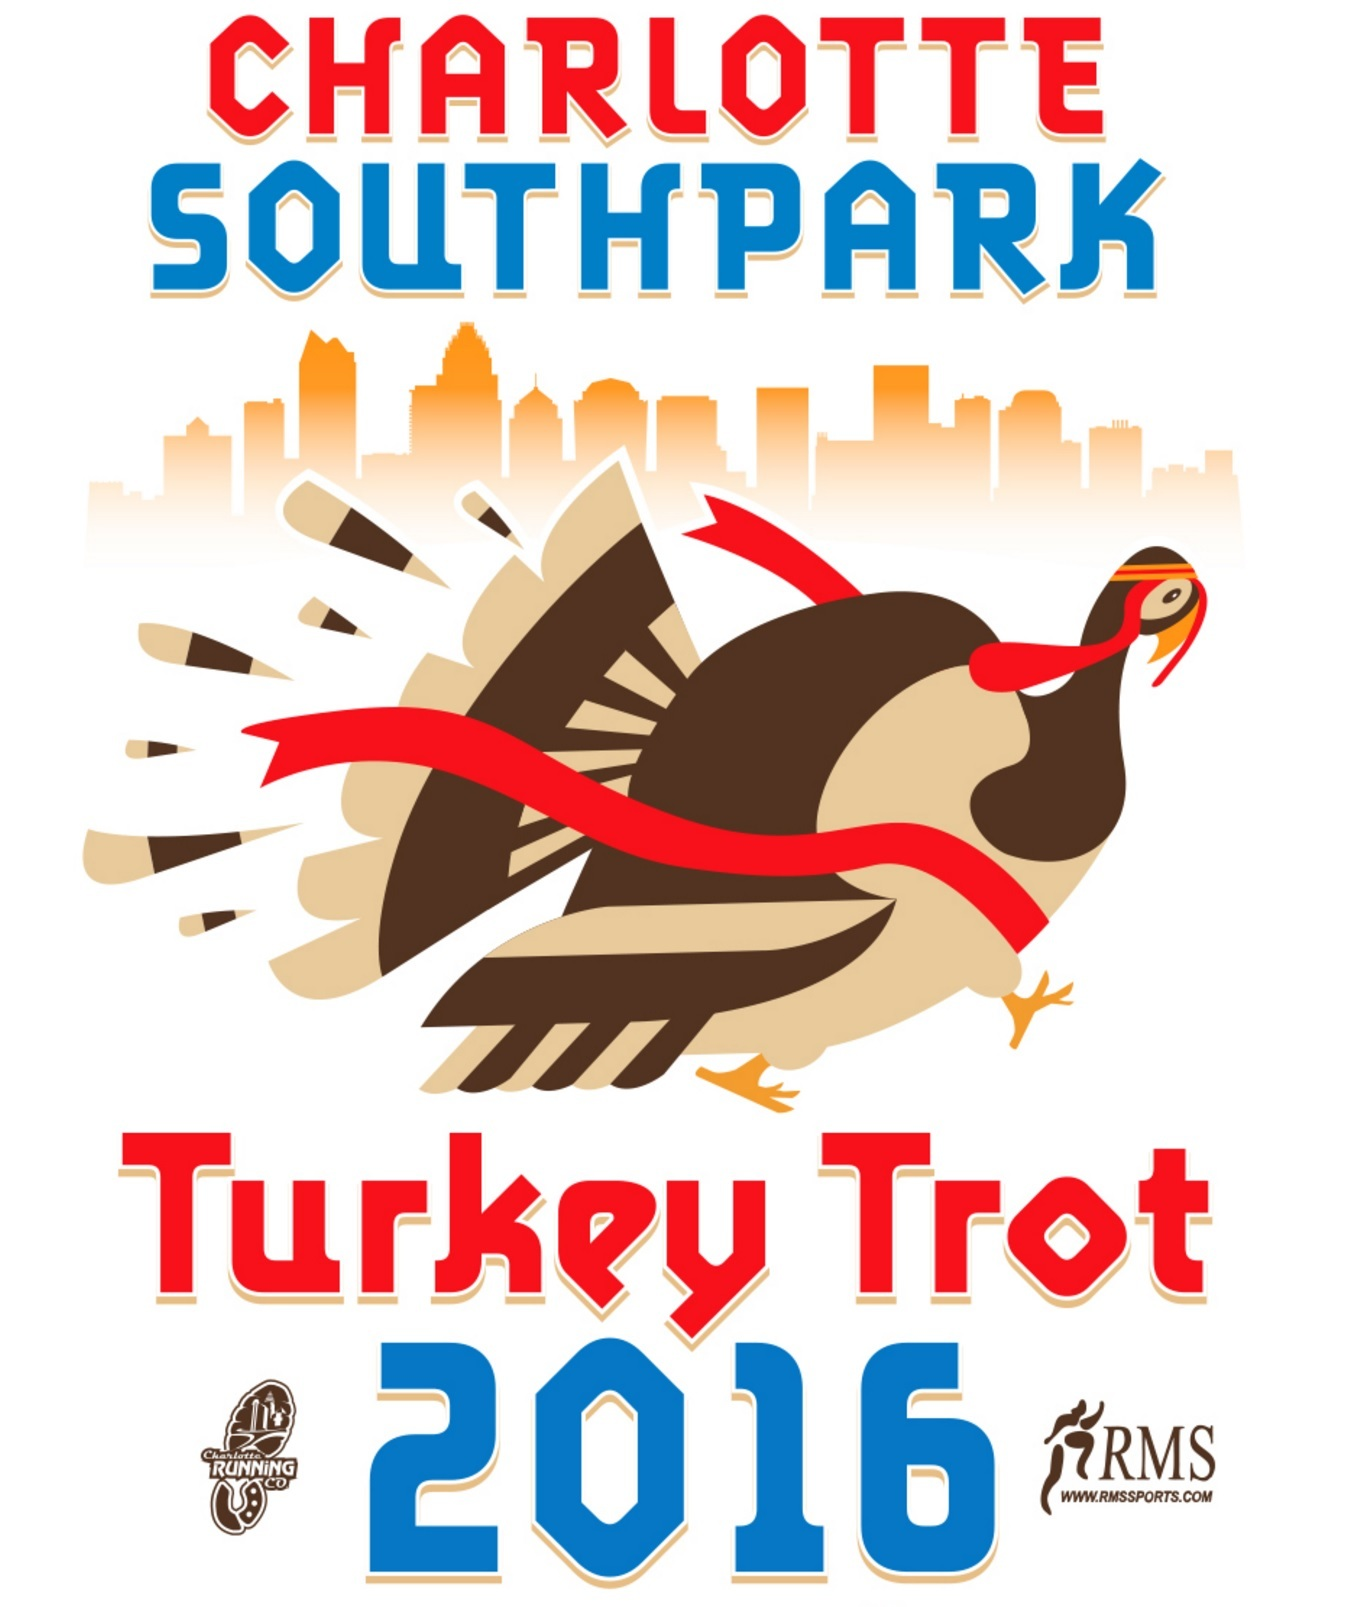 Charlotte/South Park Thanksgiving Day Turkey Trot